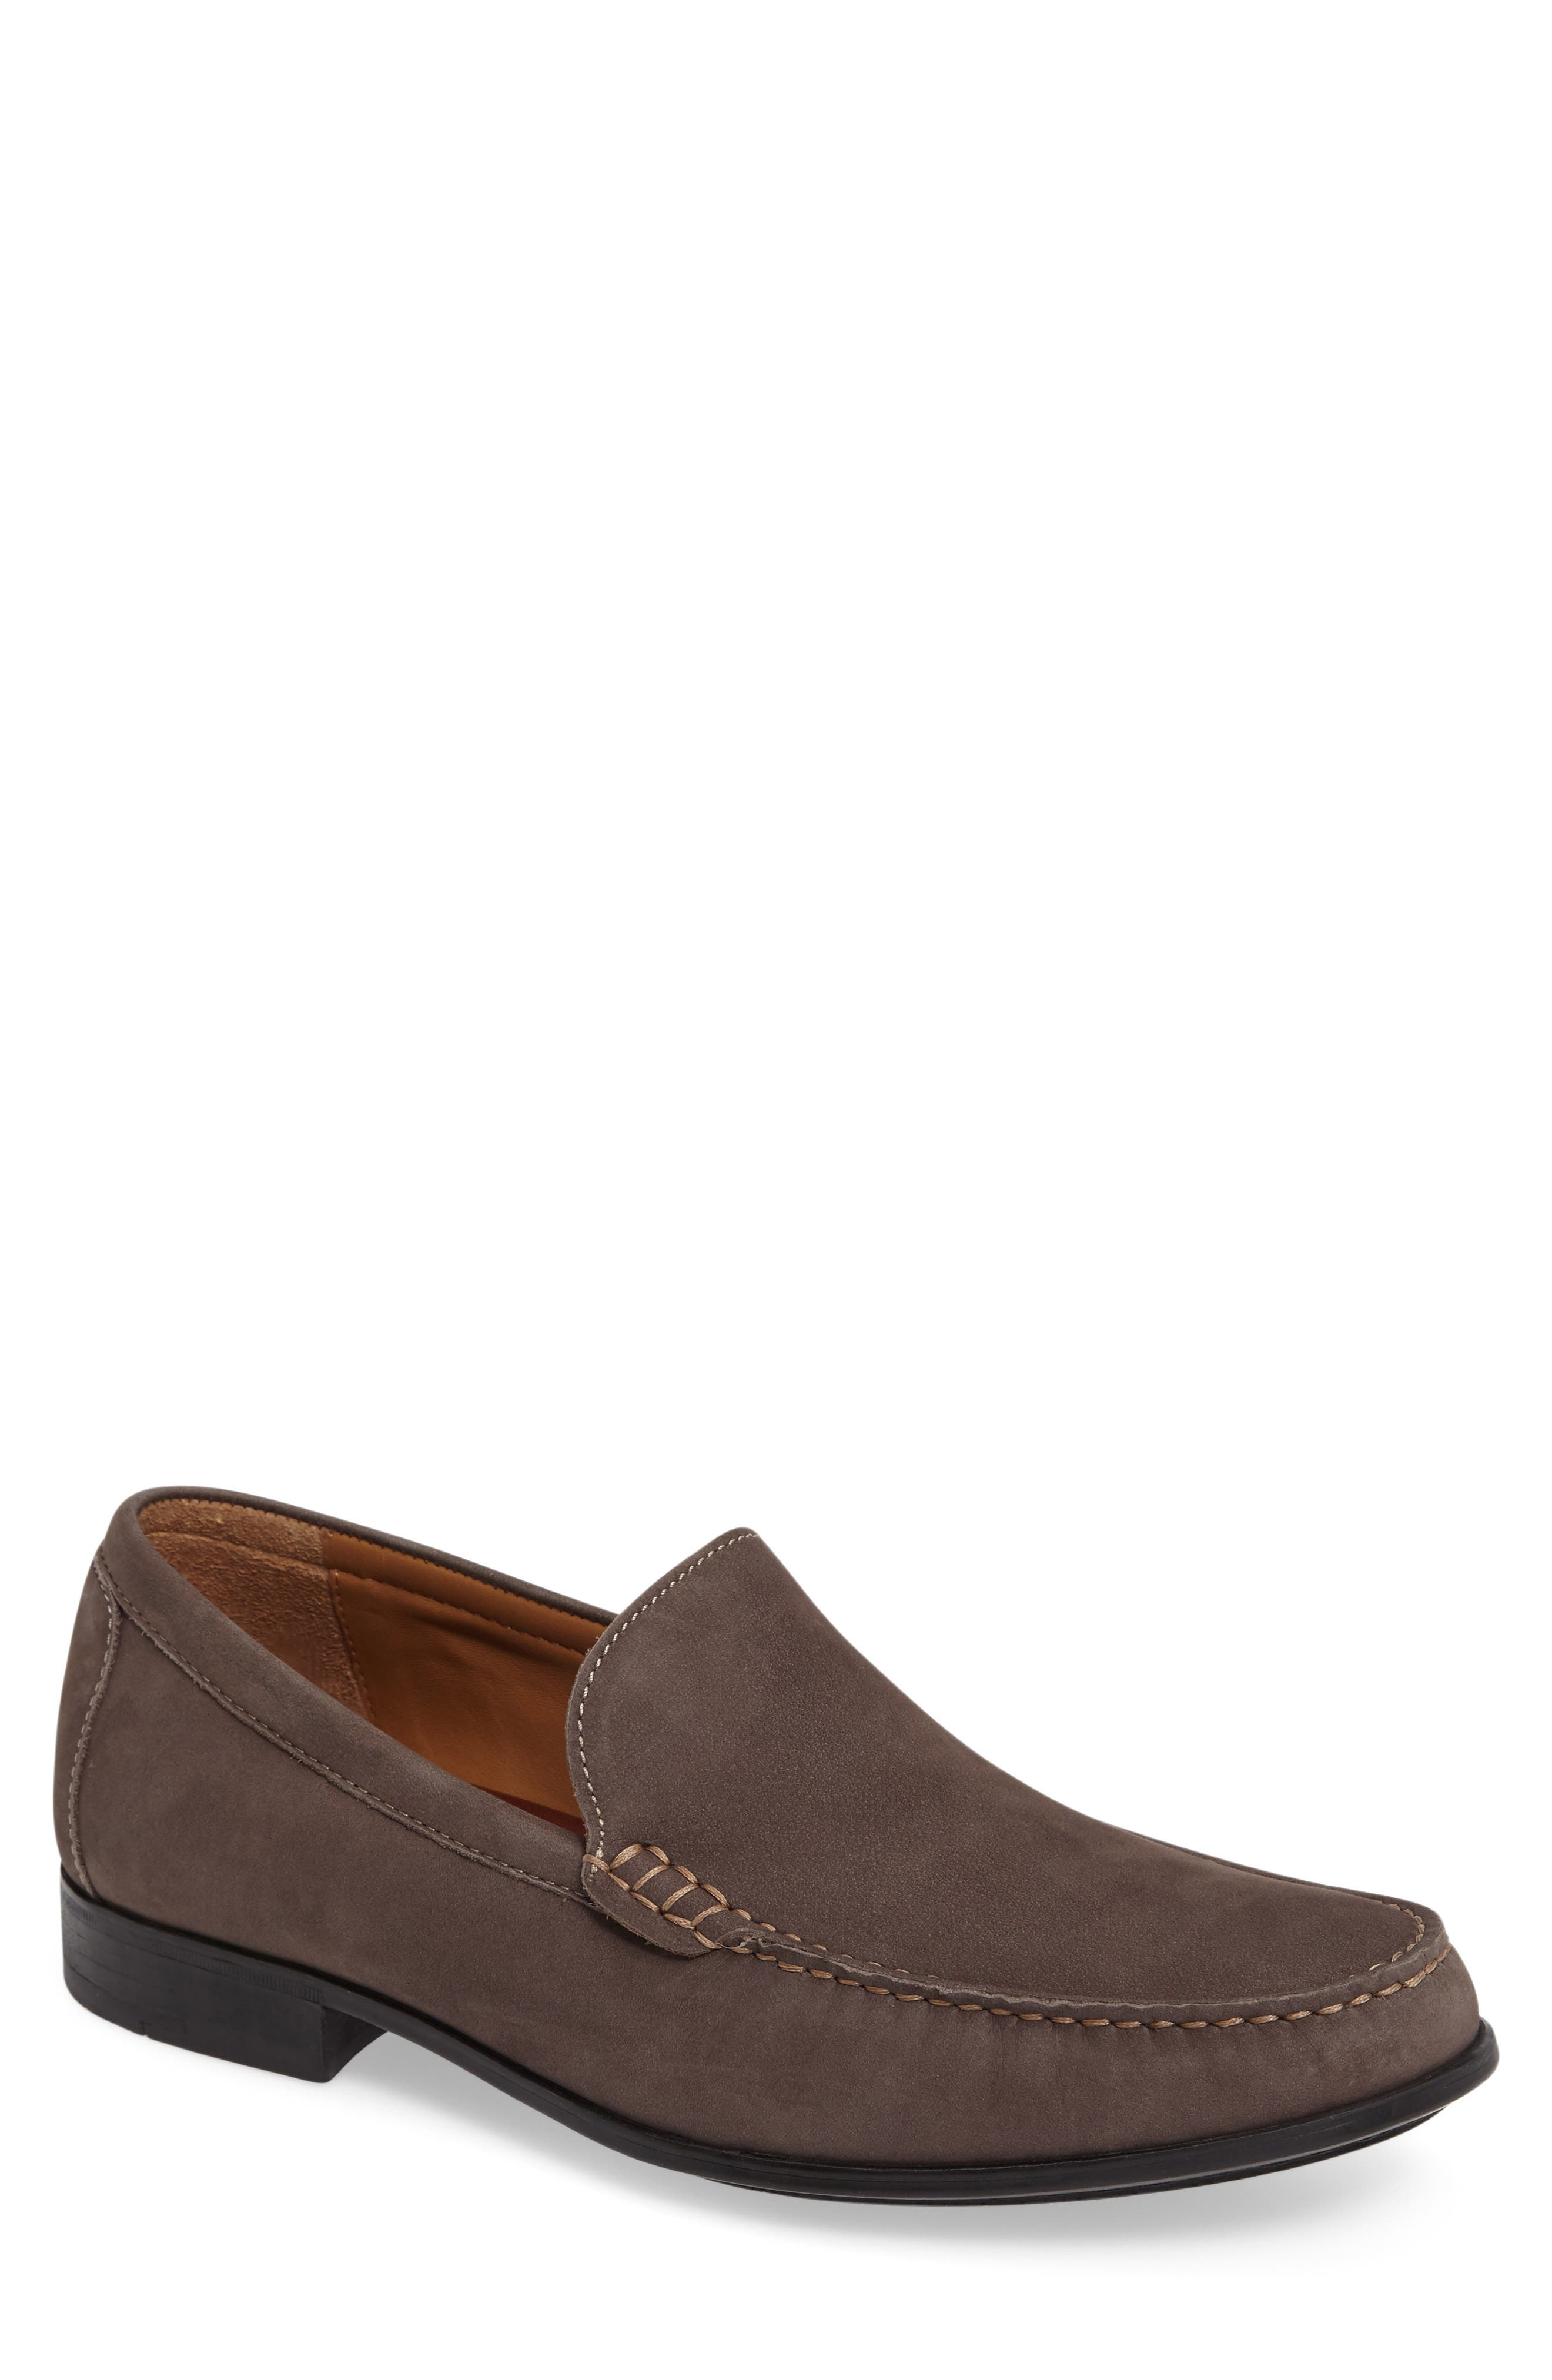 Cresswell Venetian Loafer,                         Main,                         color, 020